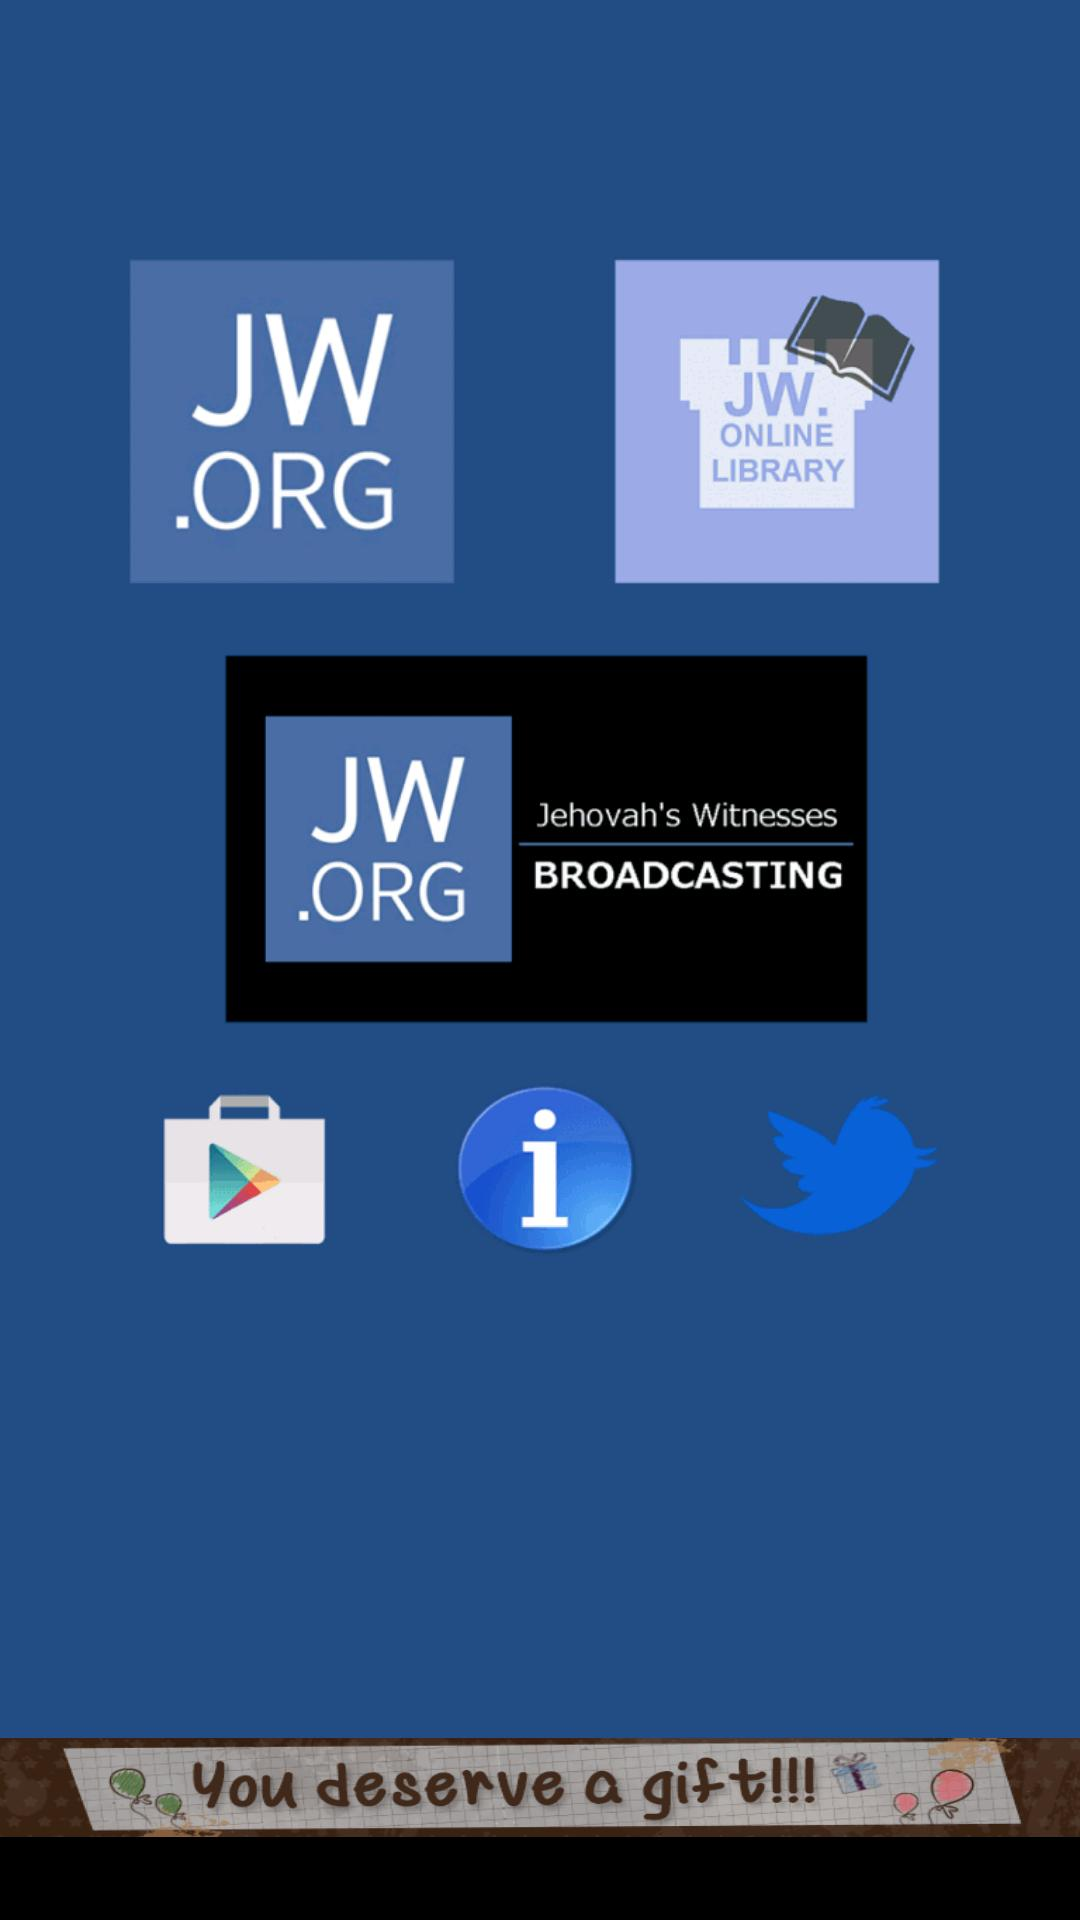 Jw Quick Tools Languages For Android Apk Download Jw.org 2019 latest updates on the go, the best app for jehovah witnesses. jw quick tools languages for android